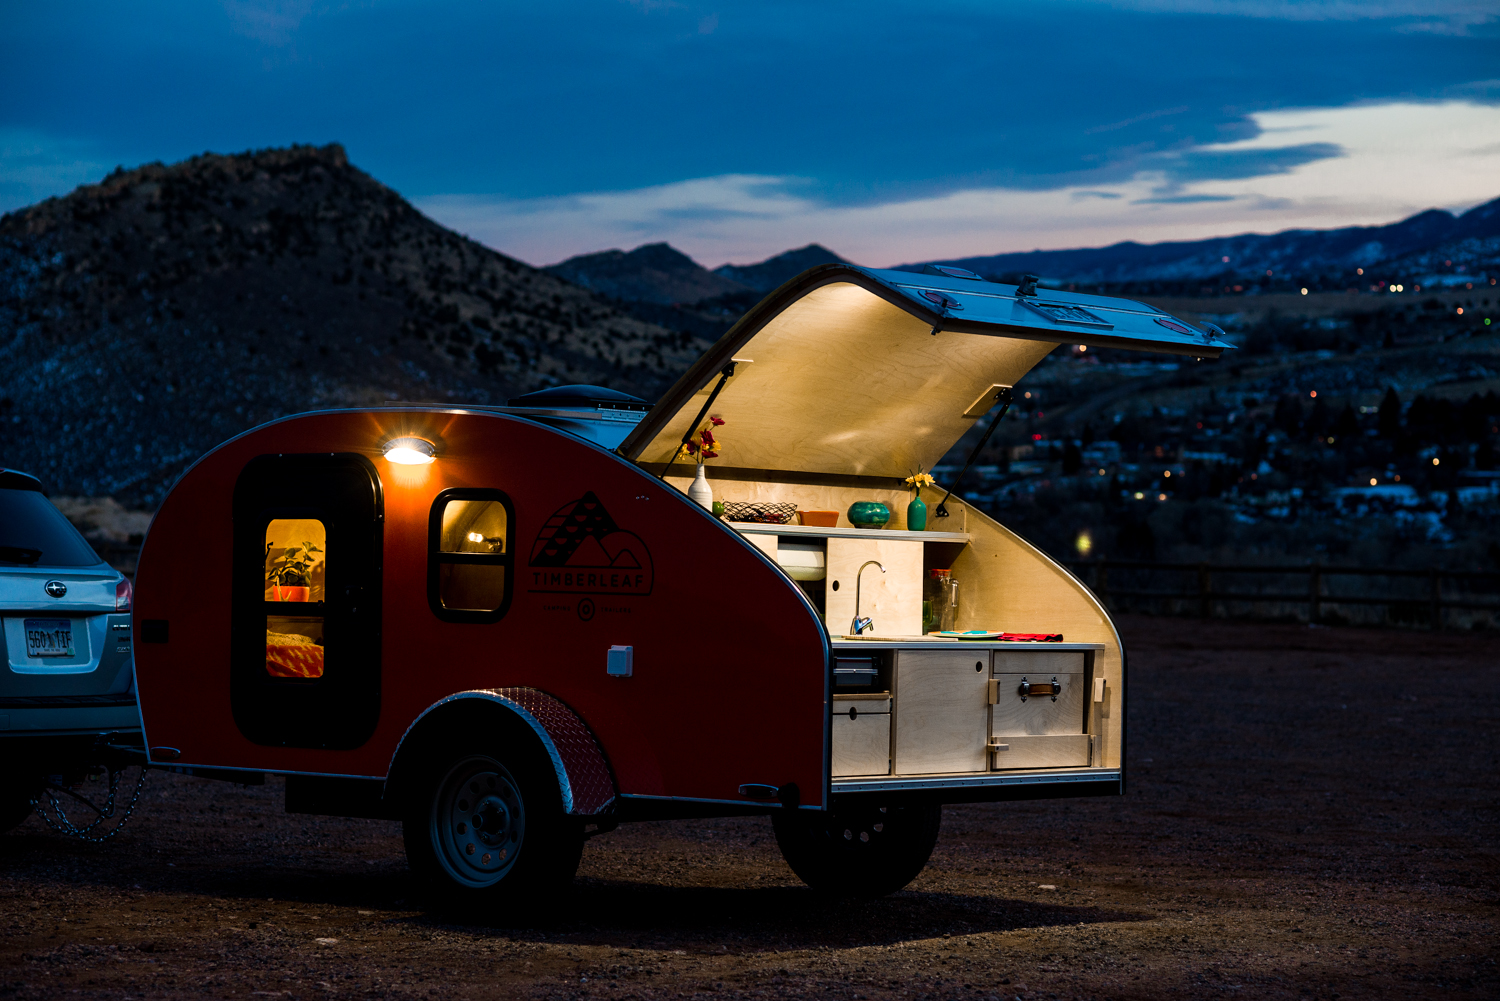 Two overhead LED lights are standard for late-night cooking in our teardrop trailer.